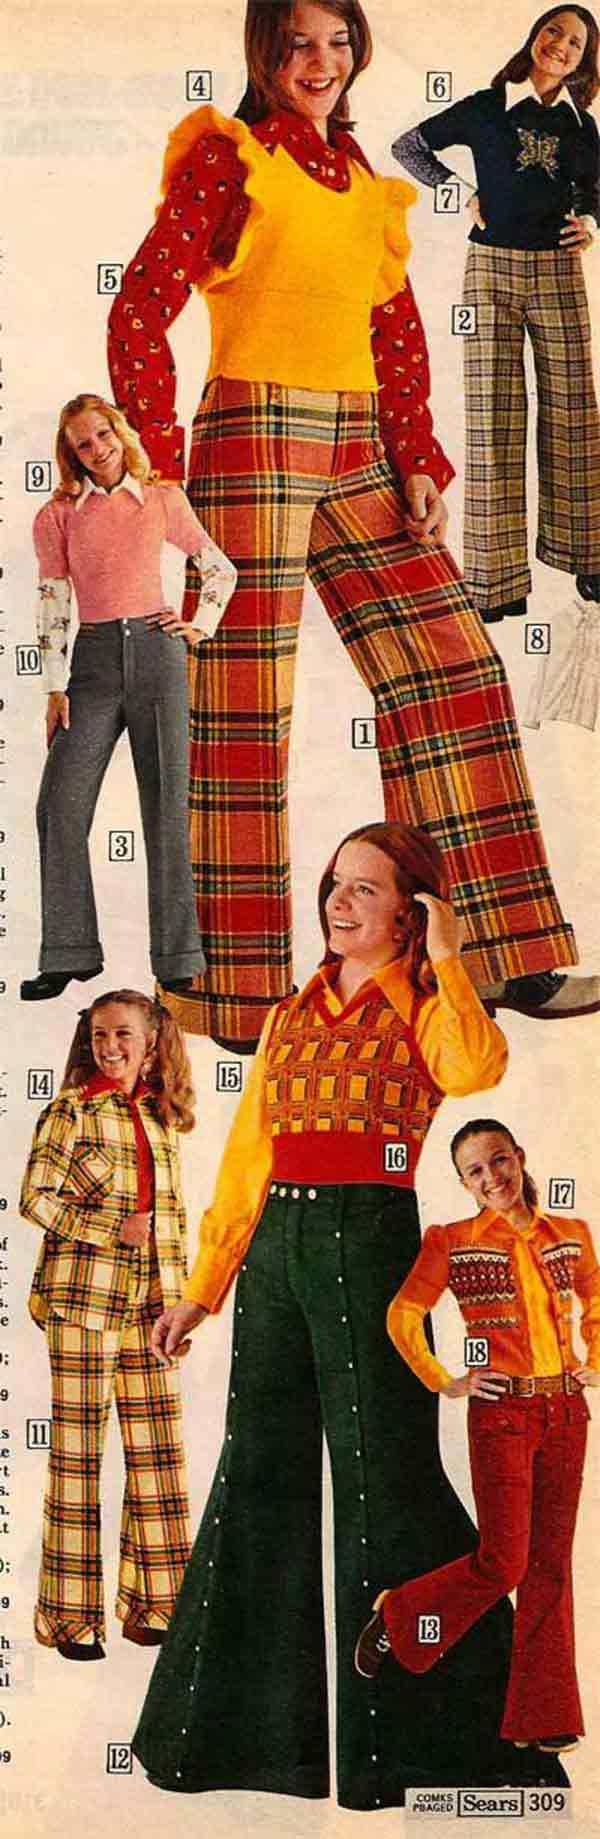 35 Funny Memes and Random Pics to Boost Your Humor Level... vintage ad, Sears catalogue, 1970s women fashions, bell bottoms